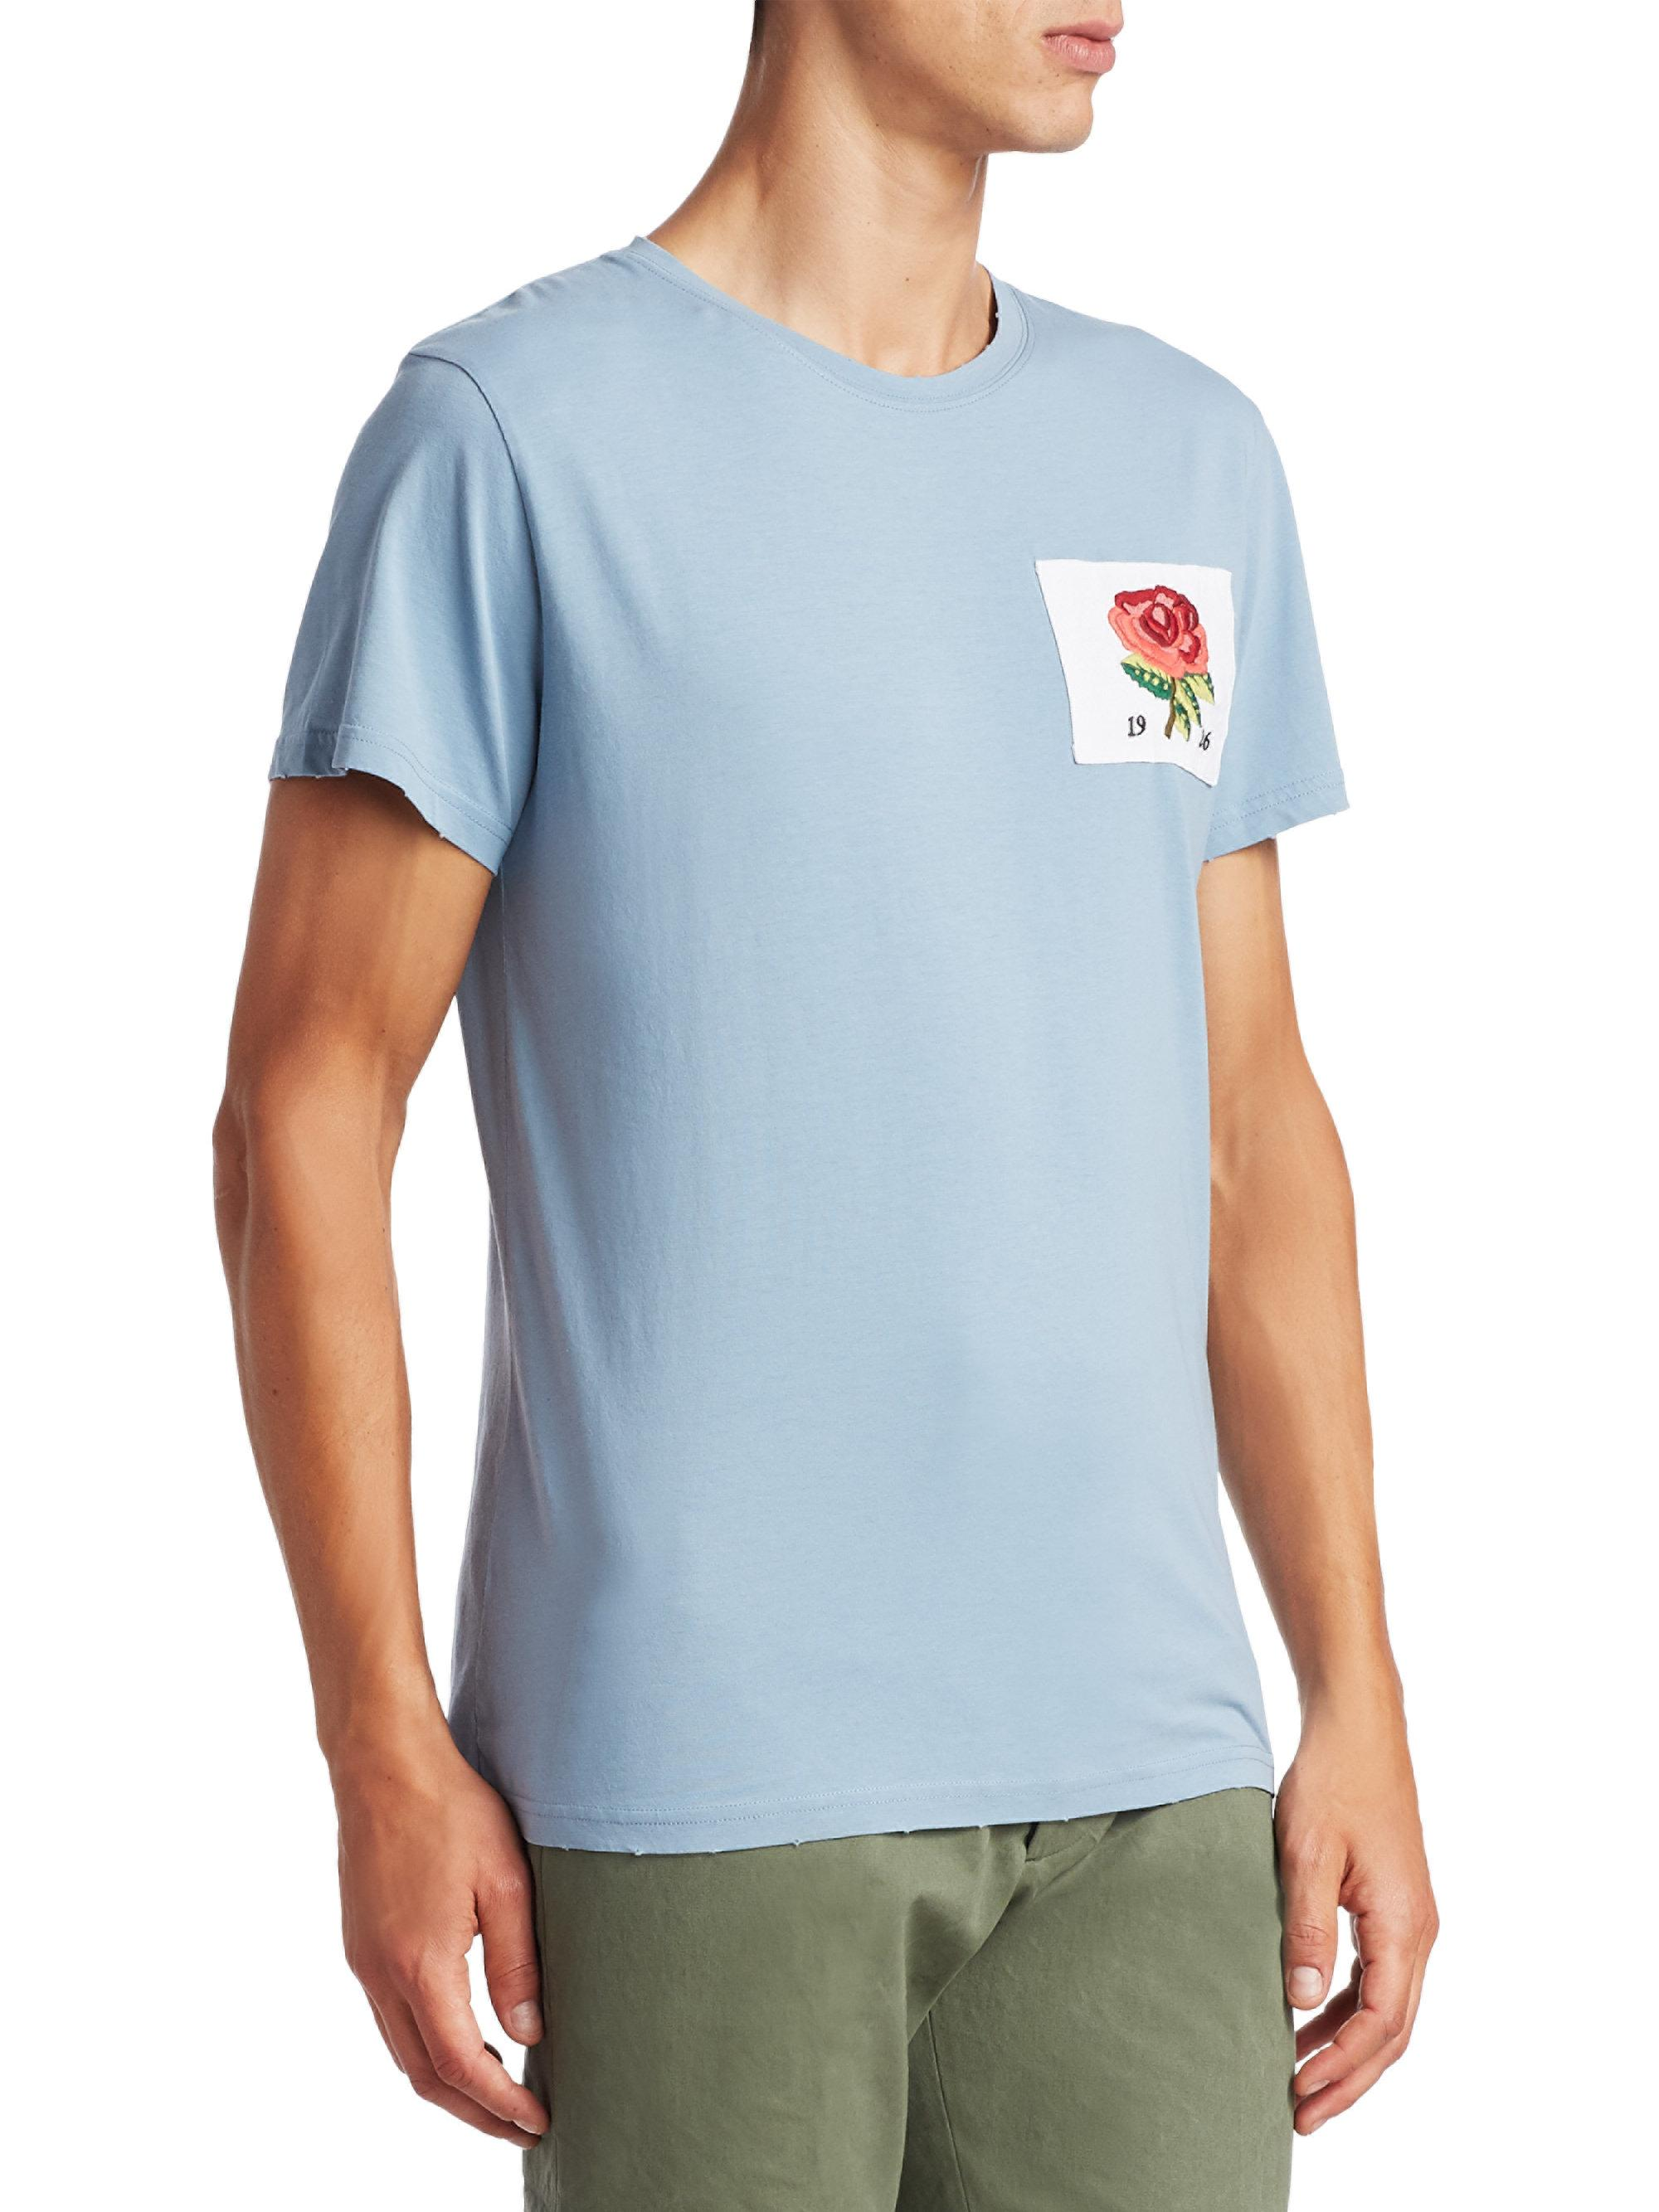 Lyst kent curwen embroidered rose cotton tee in blue